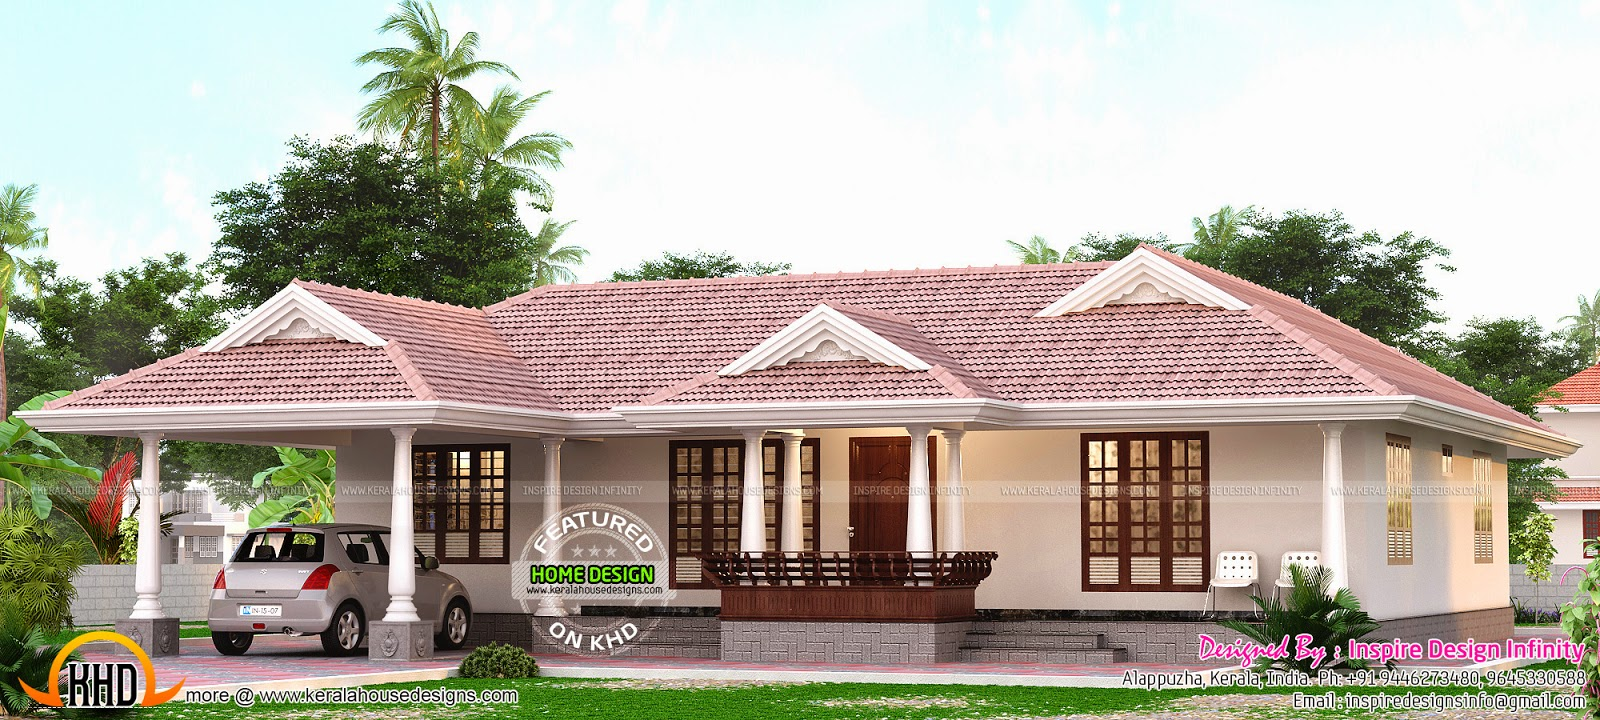 Kerala model single storied home kerala home design and for Kerala house plan images